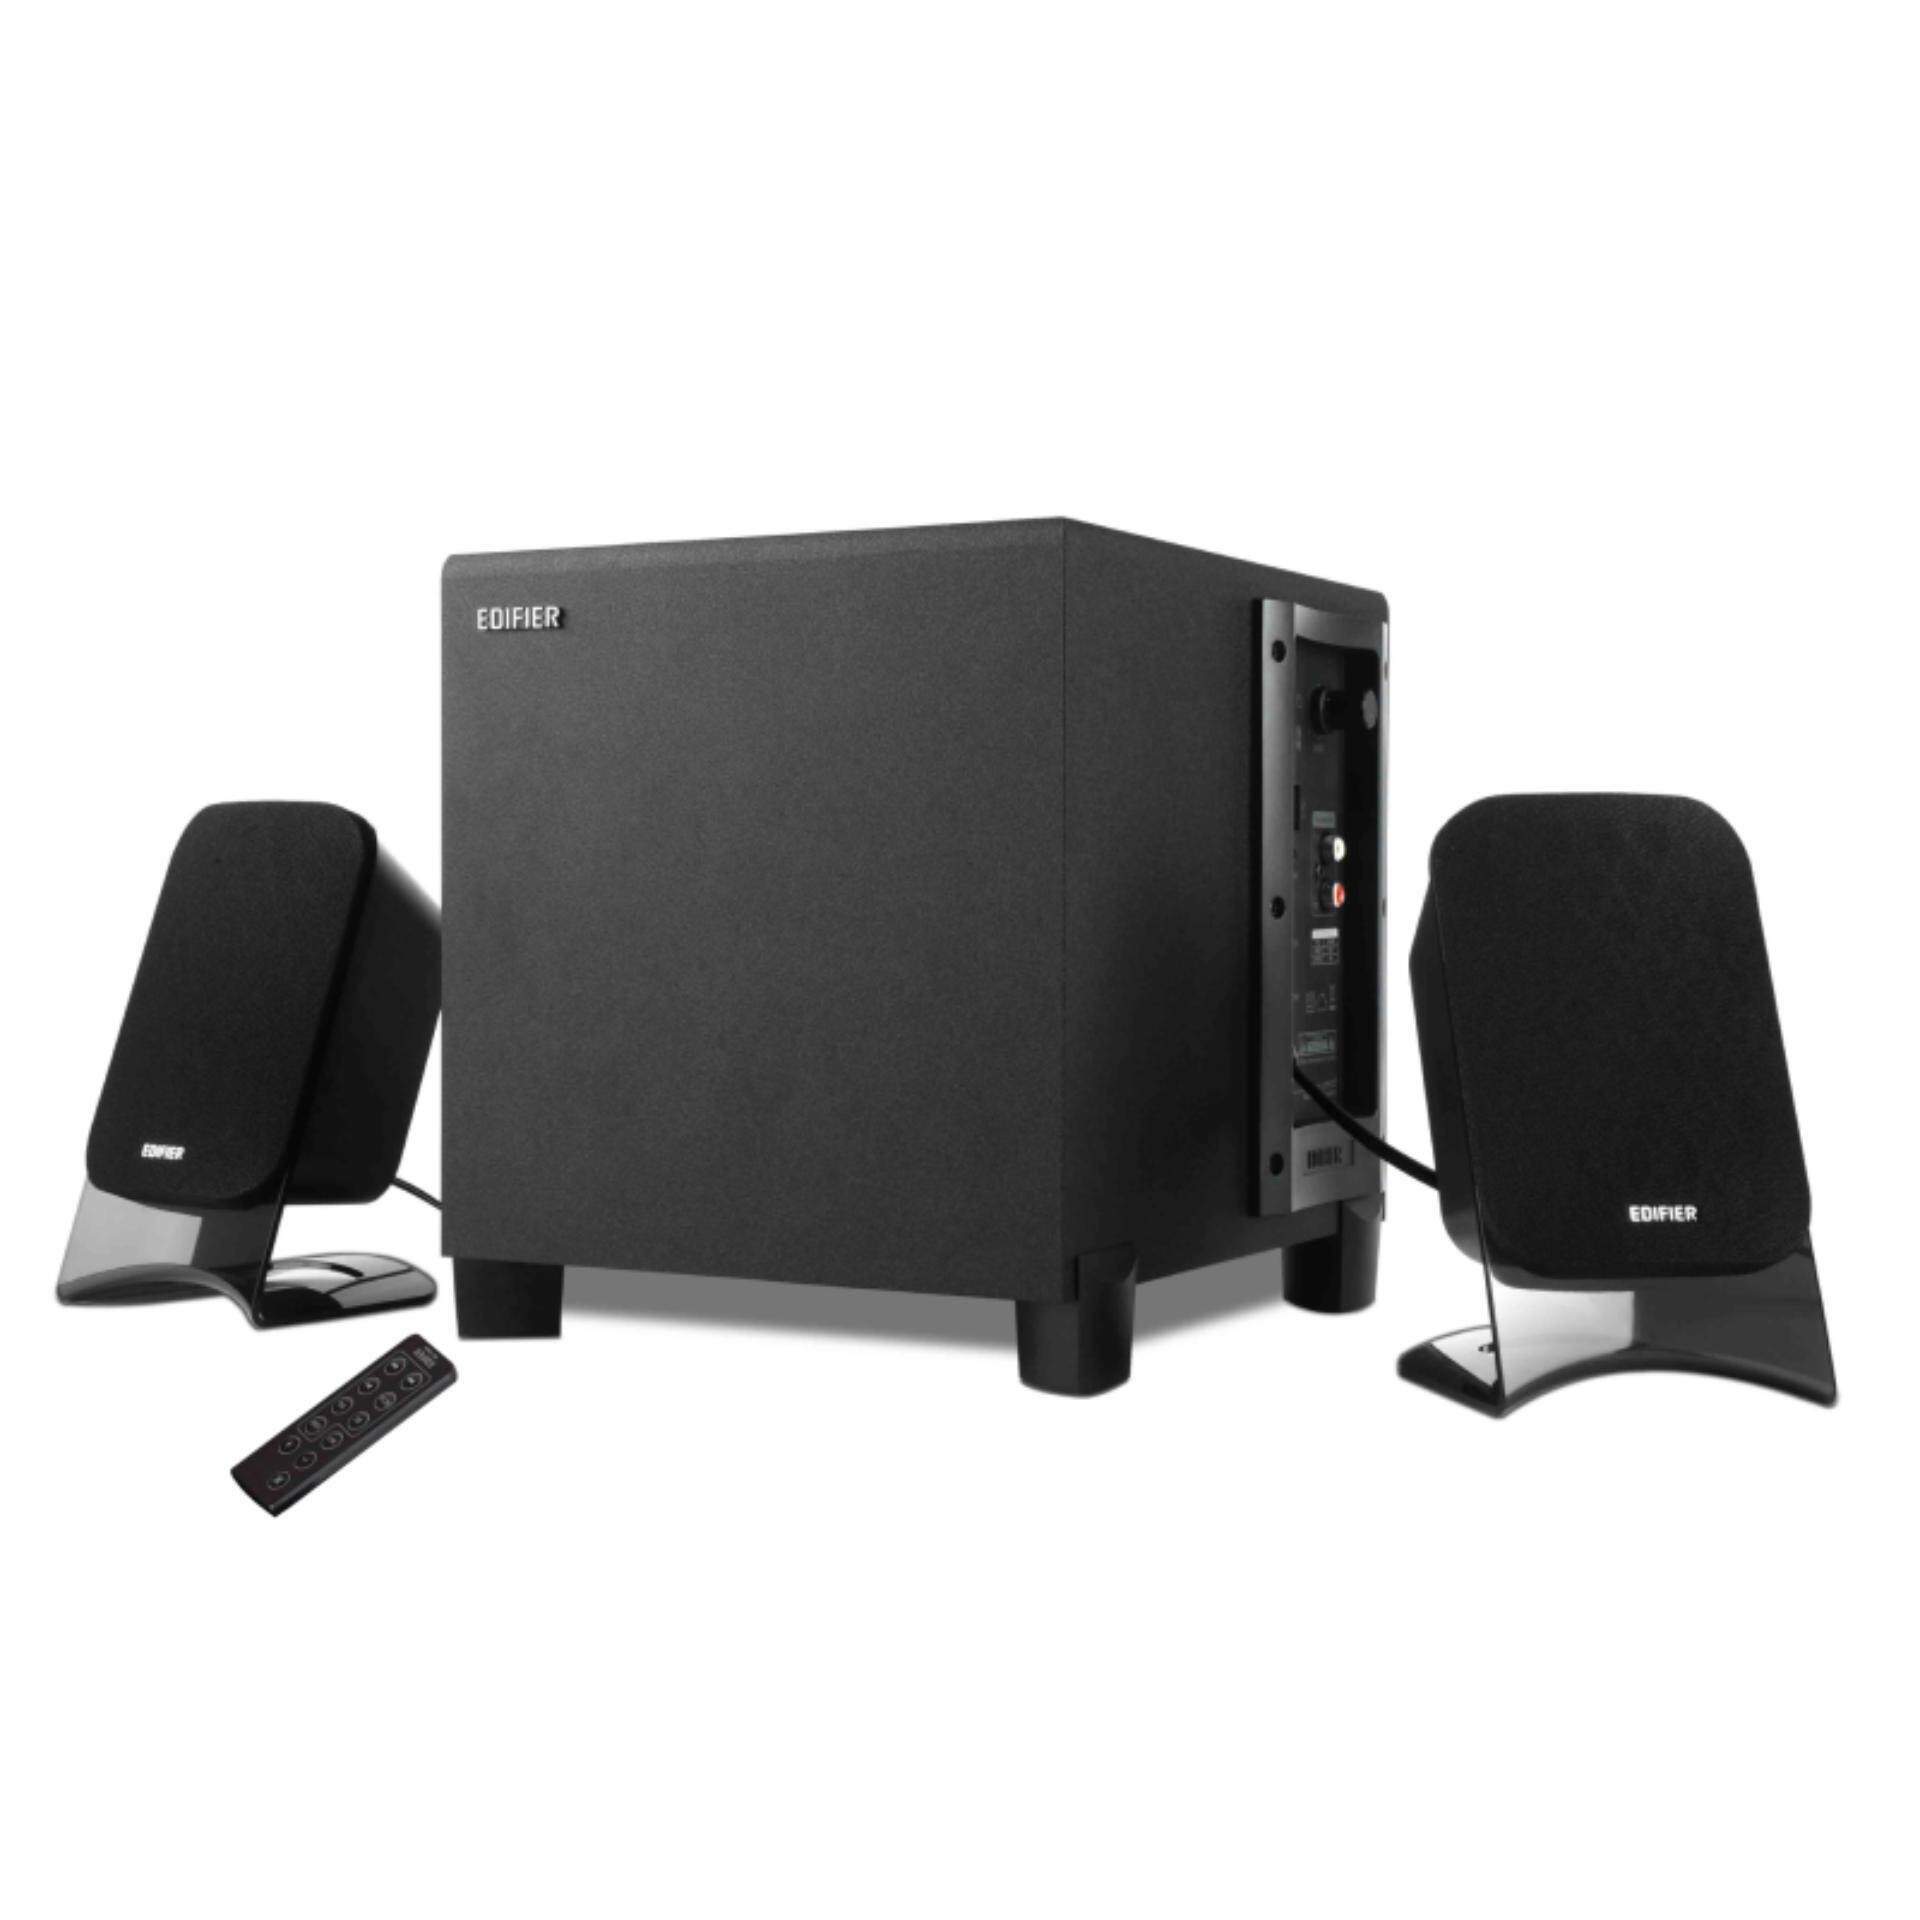 Edifier XM2 High Quality 2.1 Speaker System with Micro SD Card and Aux Input Malaysia